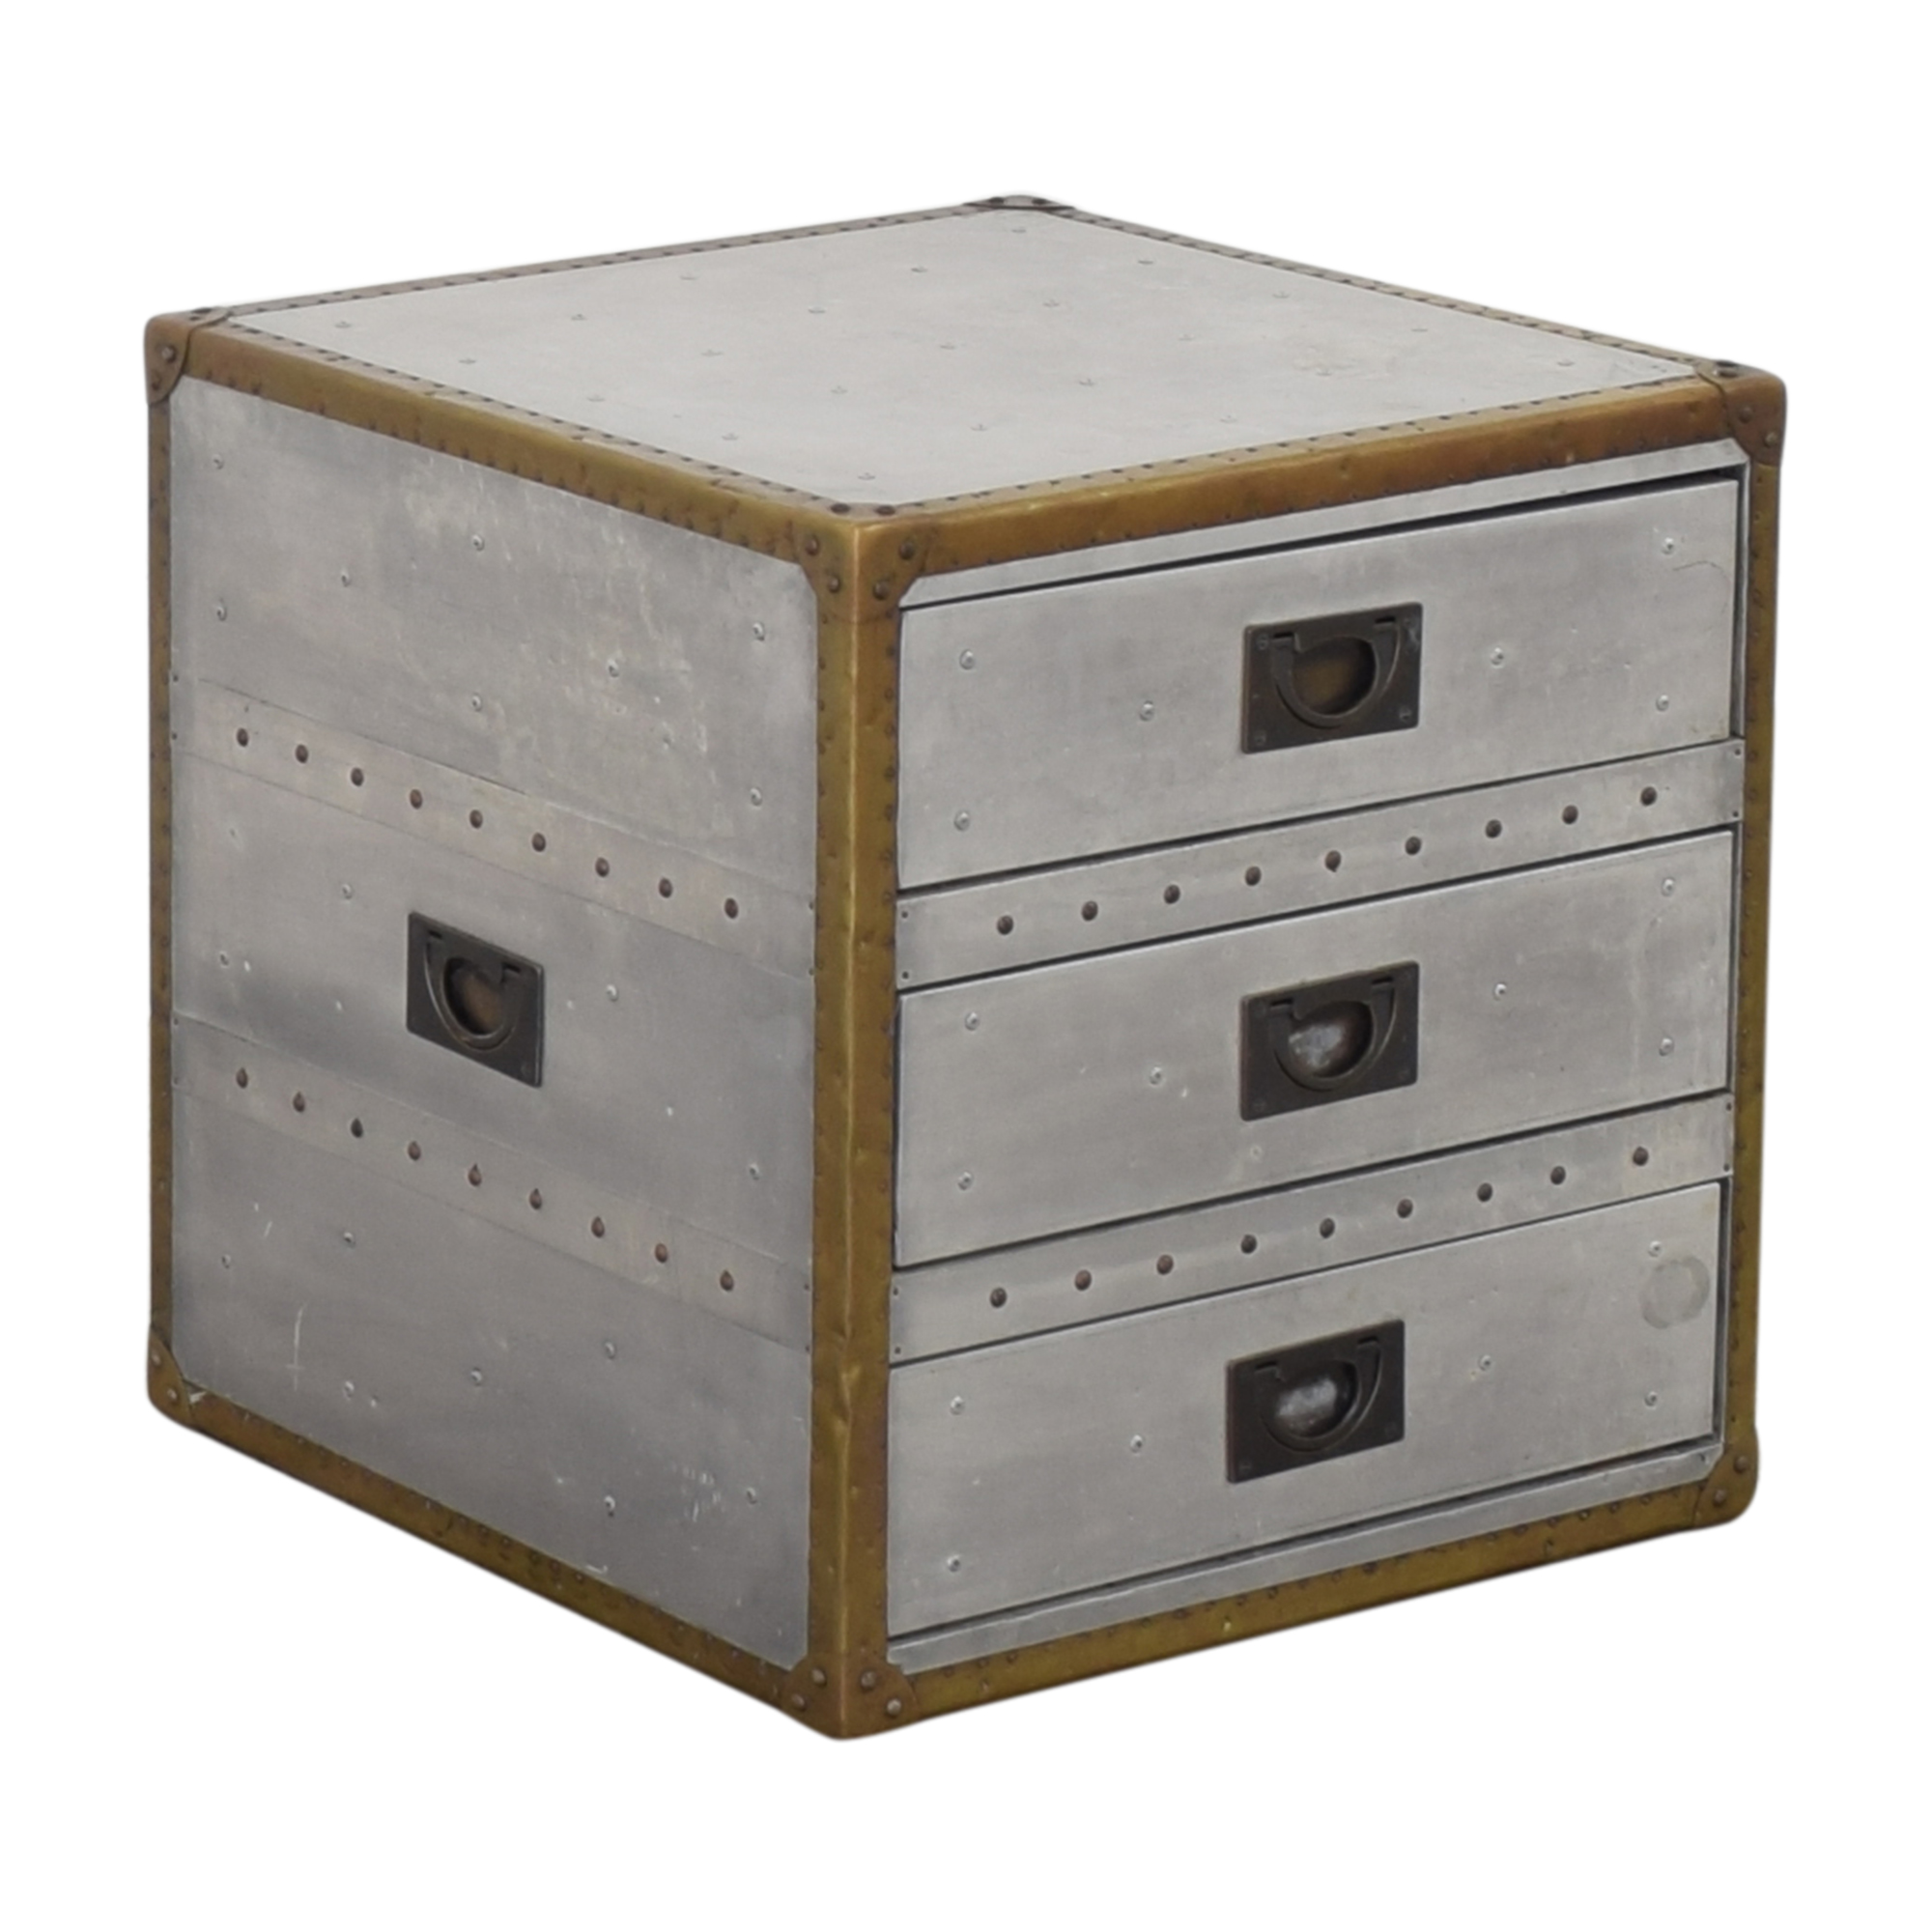 Restoration Hardware Restoration Hardware Aviator Trunk Three Drawer Cube used